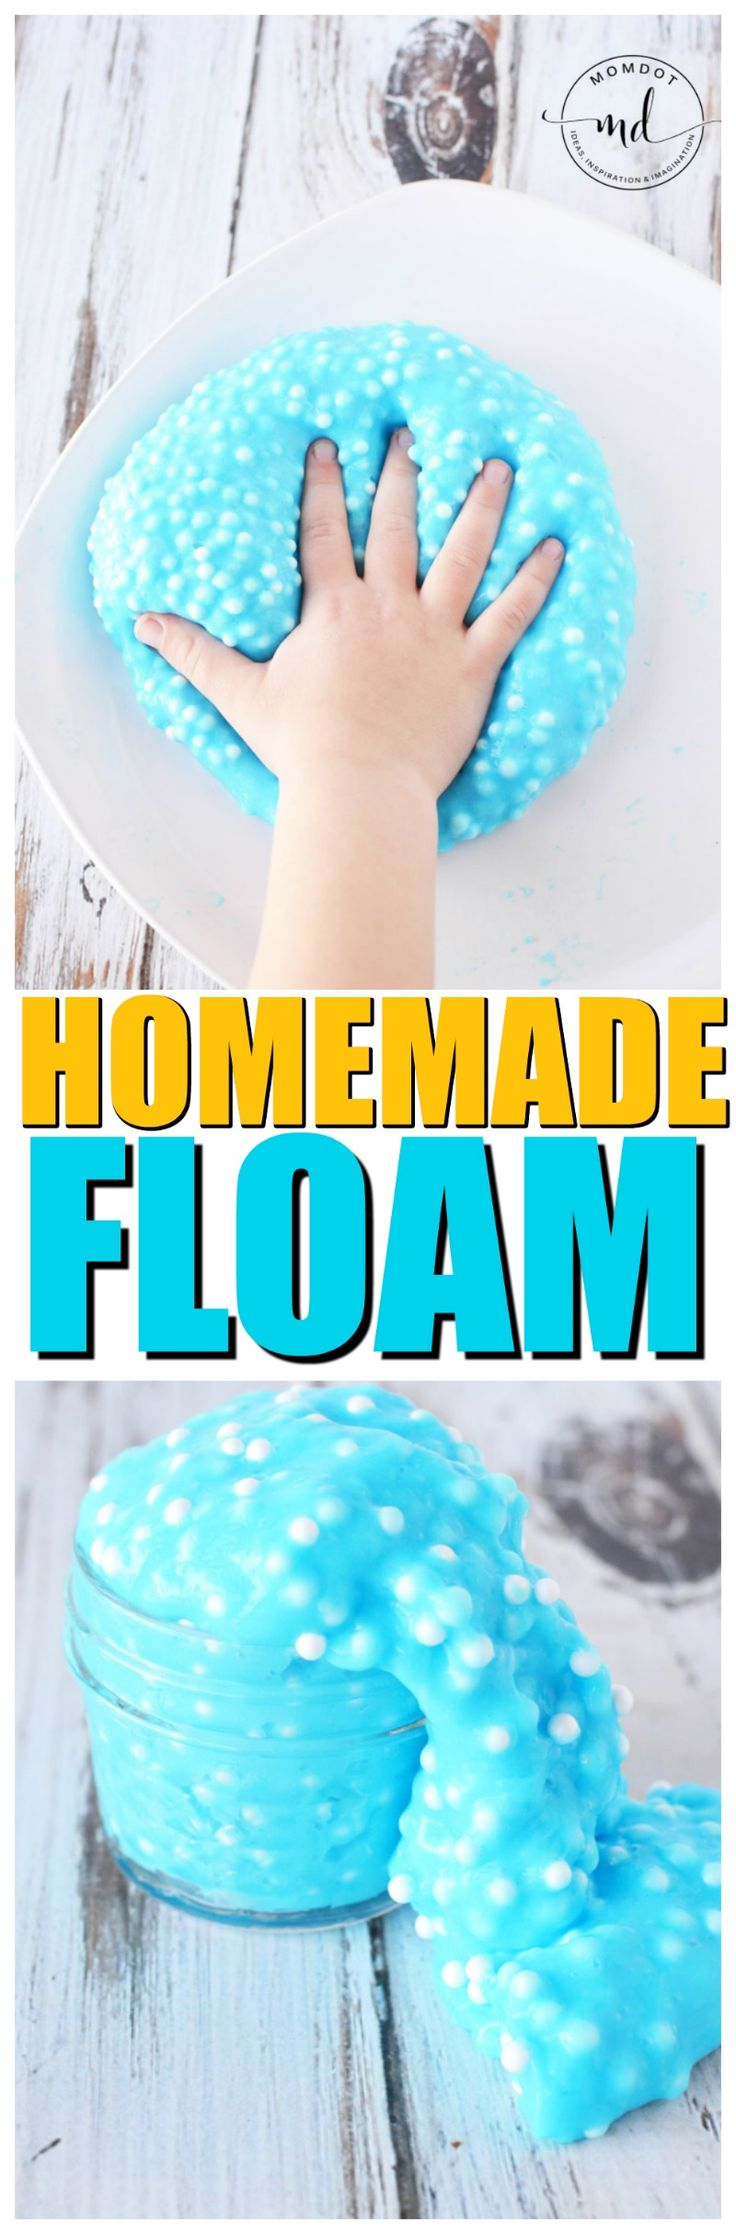 Homemade Floam: DIY Floam Recipe Homemade floam is so easy! Simply take a slime recipe and combine it with Styrofoam balls, adding as many or as few as you want for a different texture outcome. See what floam recipe I liked the best and learn how to make floam right at home today!